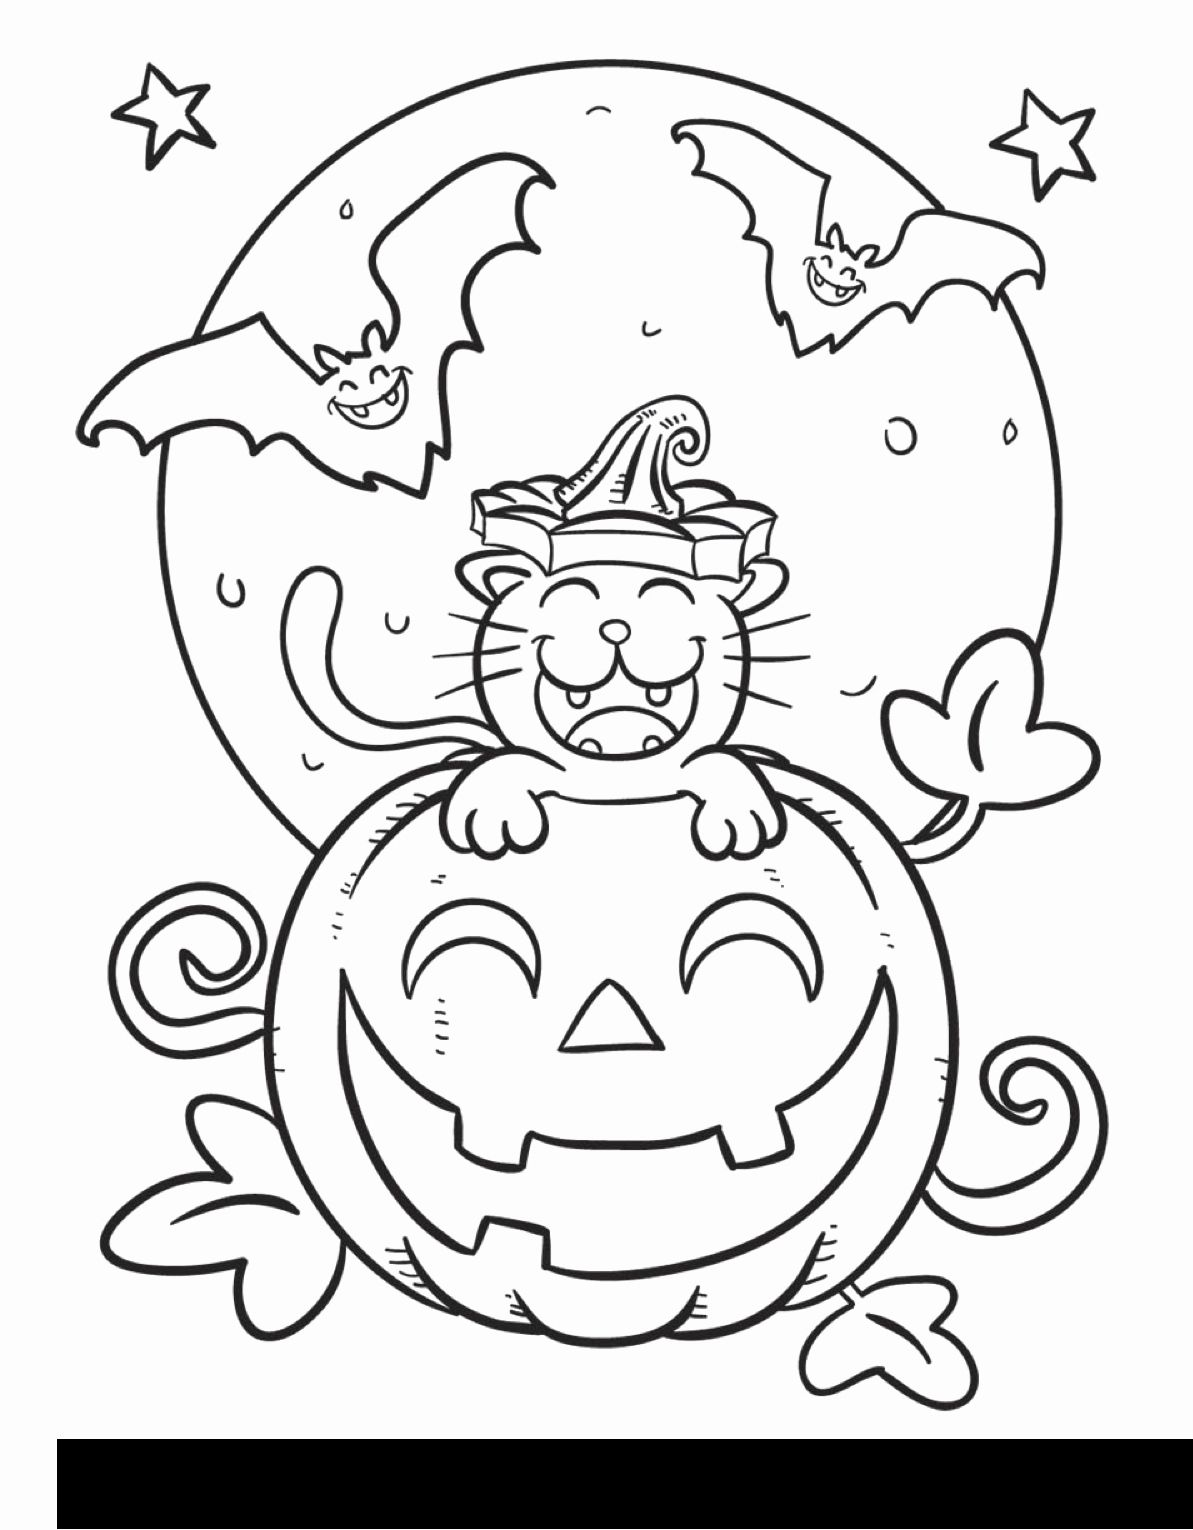 Animal Coloring Pages For 1st Grade Best Of Cantinho Do Primeiro Ciclo Desenh Halloween Coloring Pages Halloween Coloring Pages Printable Animal Coloring Pages